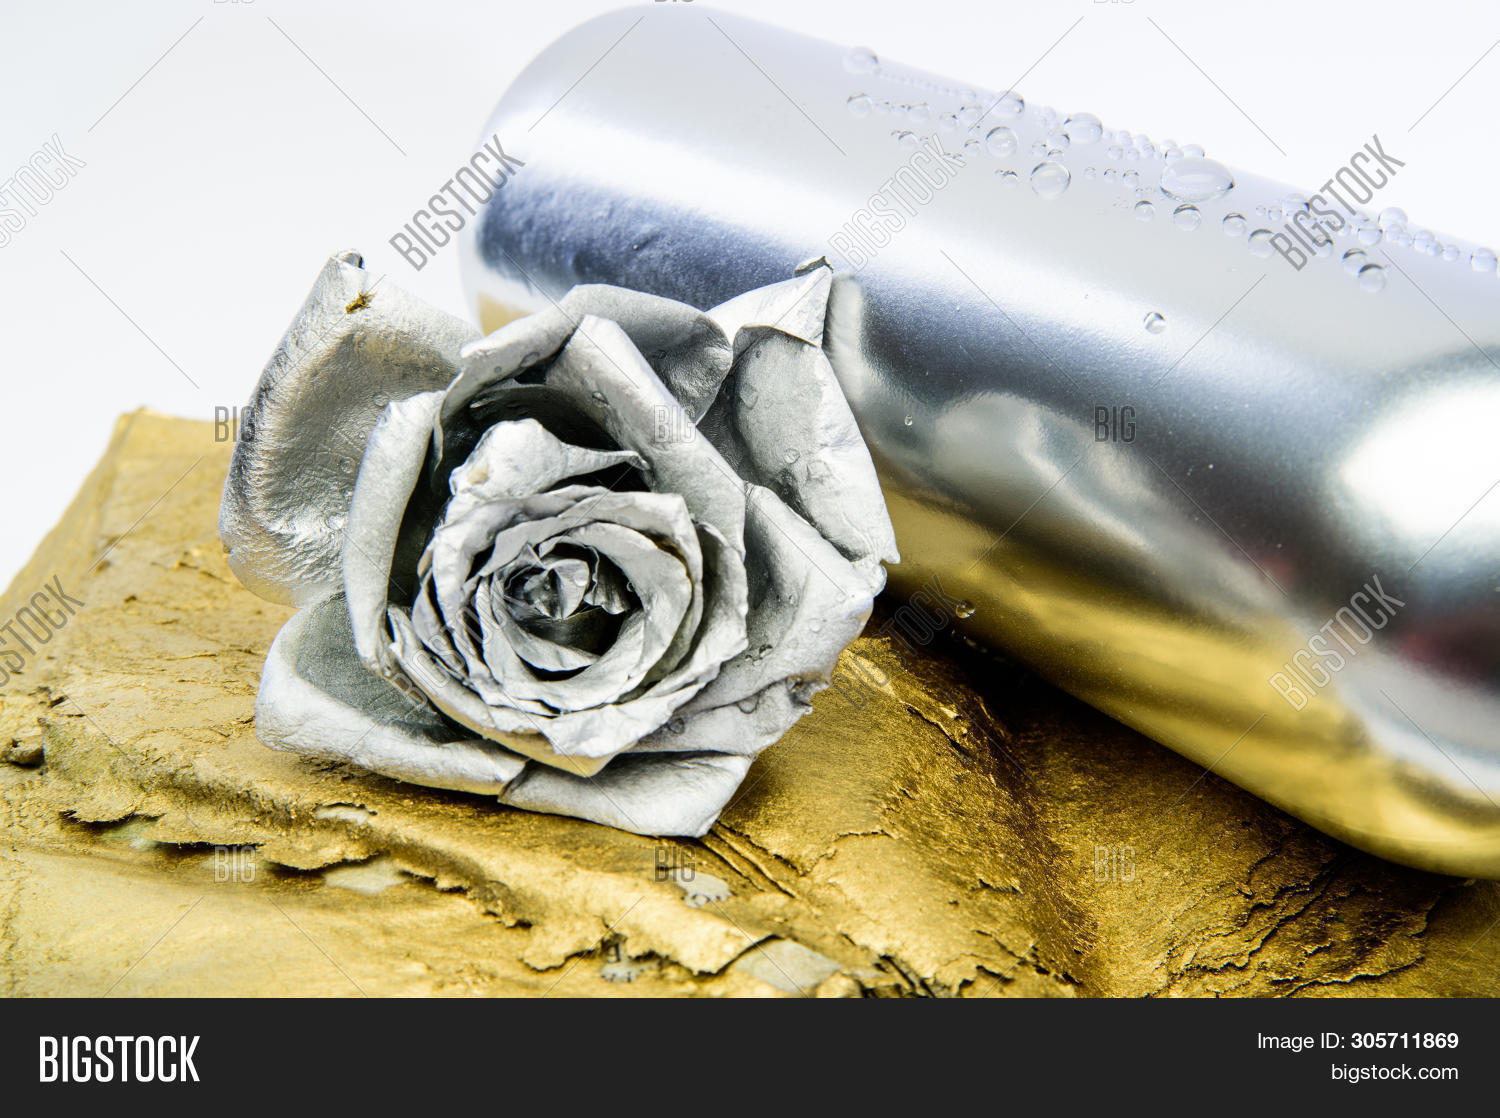 Floral Wine. Metal Flower In Steel Silver Bottle. Forging And Sculpture. Silver Metal. Romantic Date